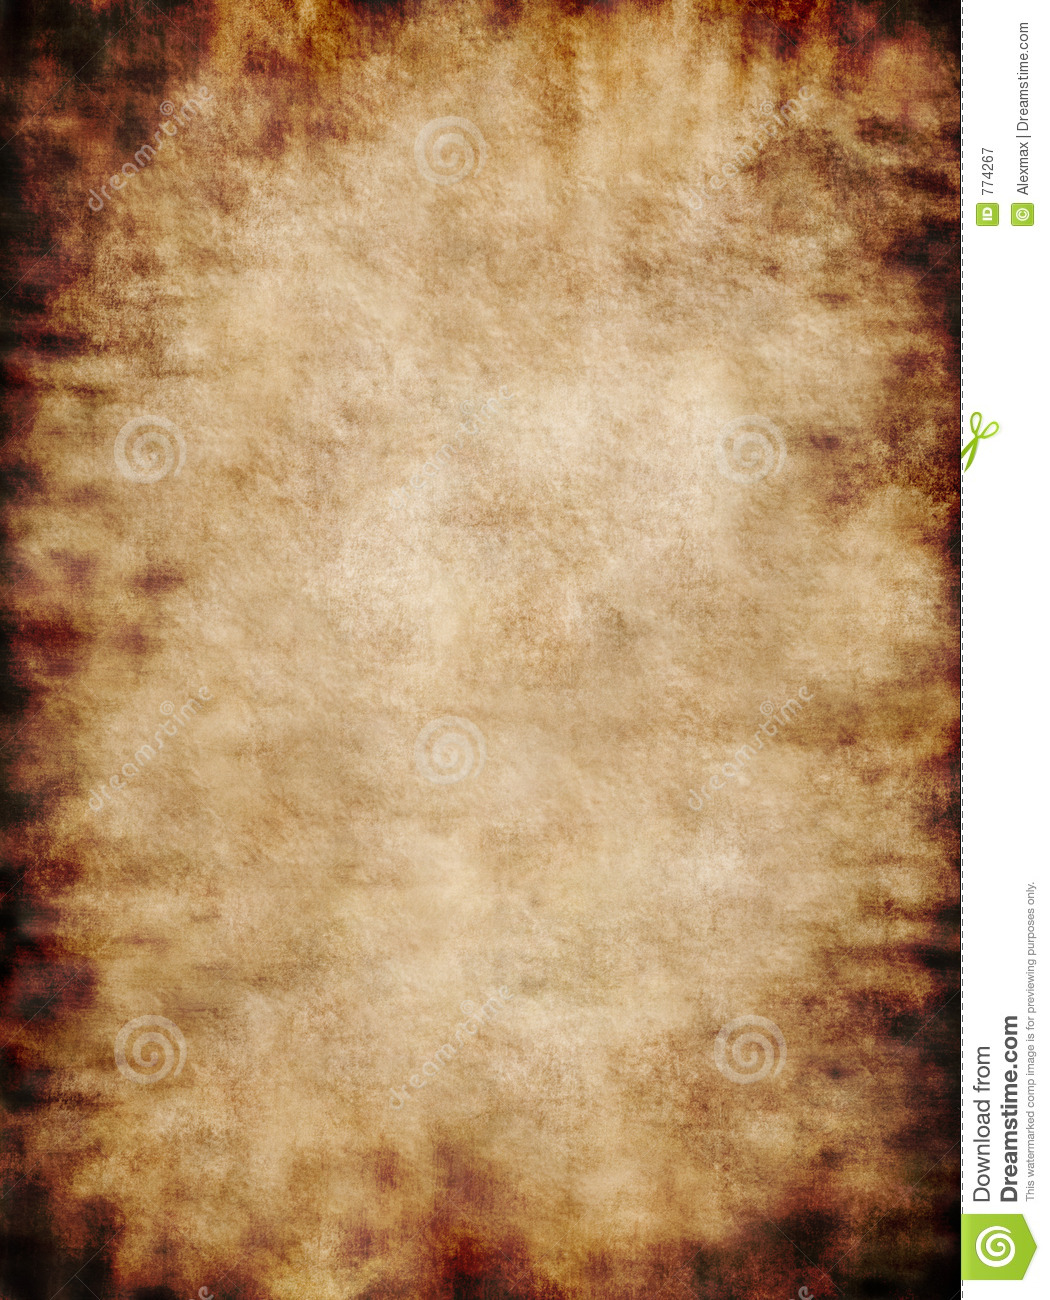 Ancient Rustic Grungy Parchment Paper Texture Background Royalty Free ...: www.dreamstime.com/royalty-free-stock-photography-ancient-rustic...